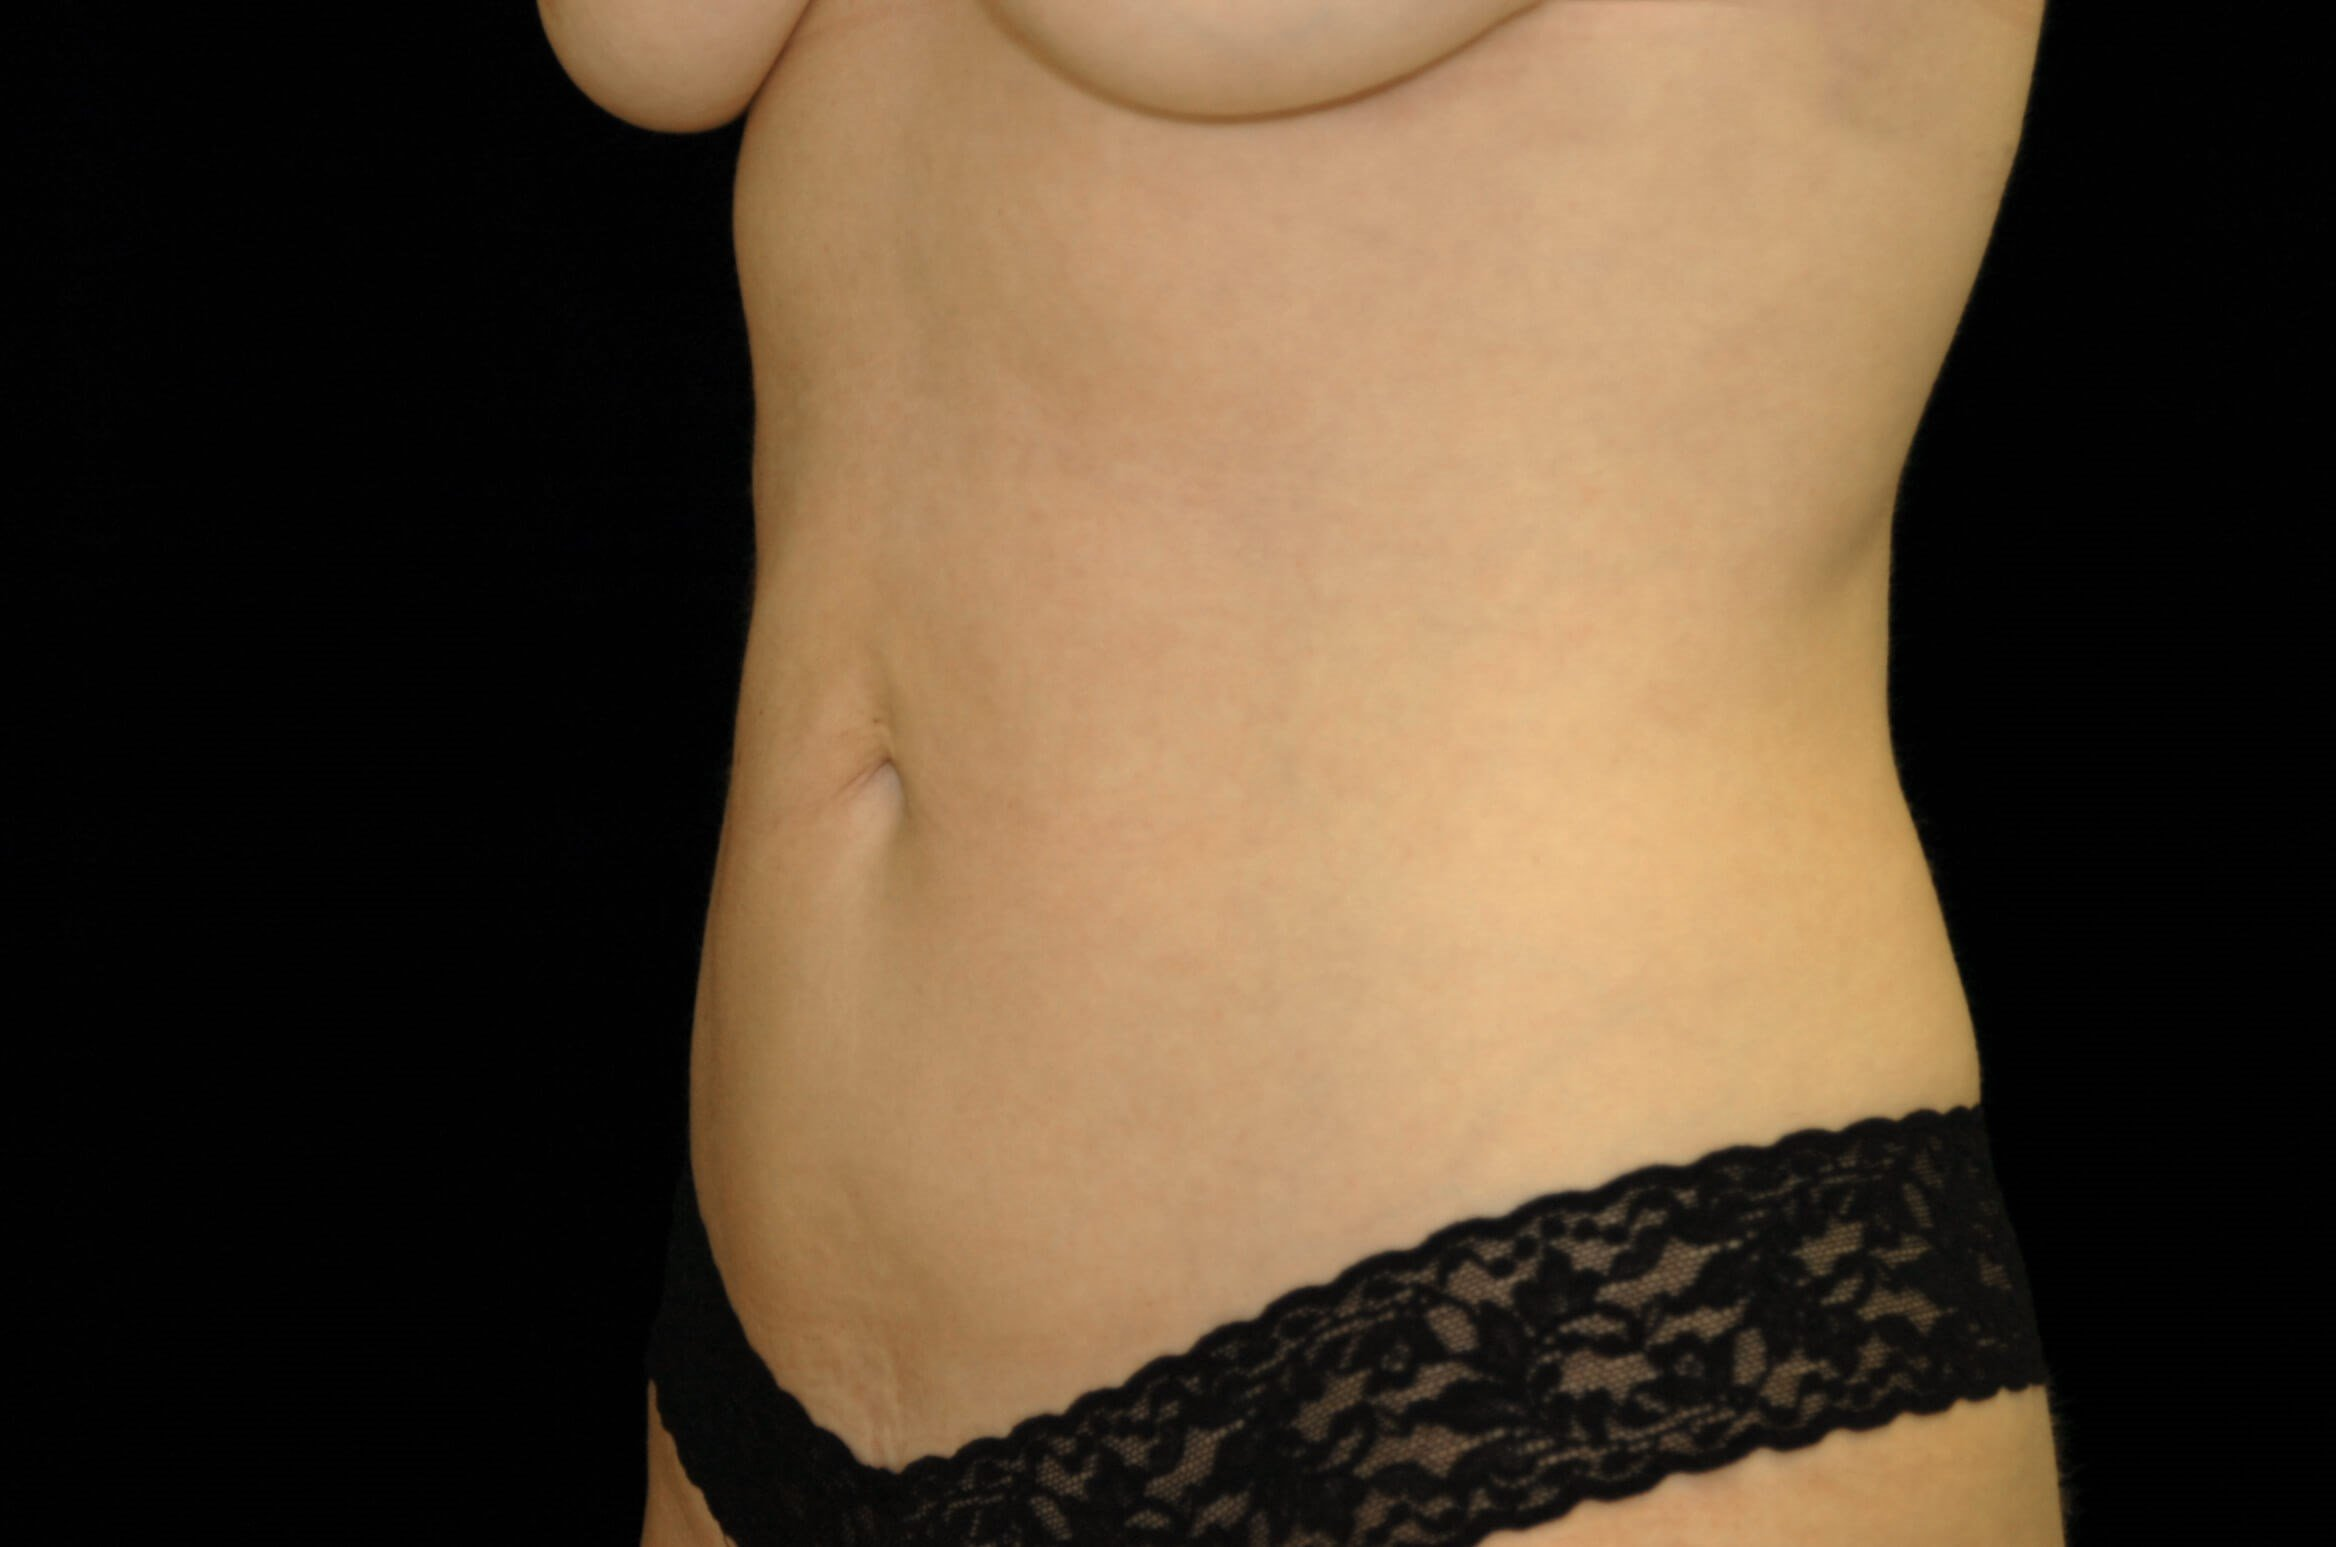 Liposuction Abdomen/Flanks After